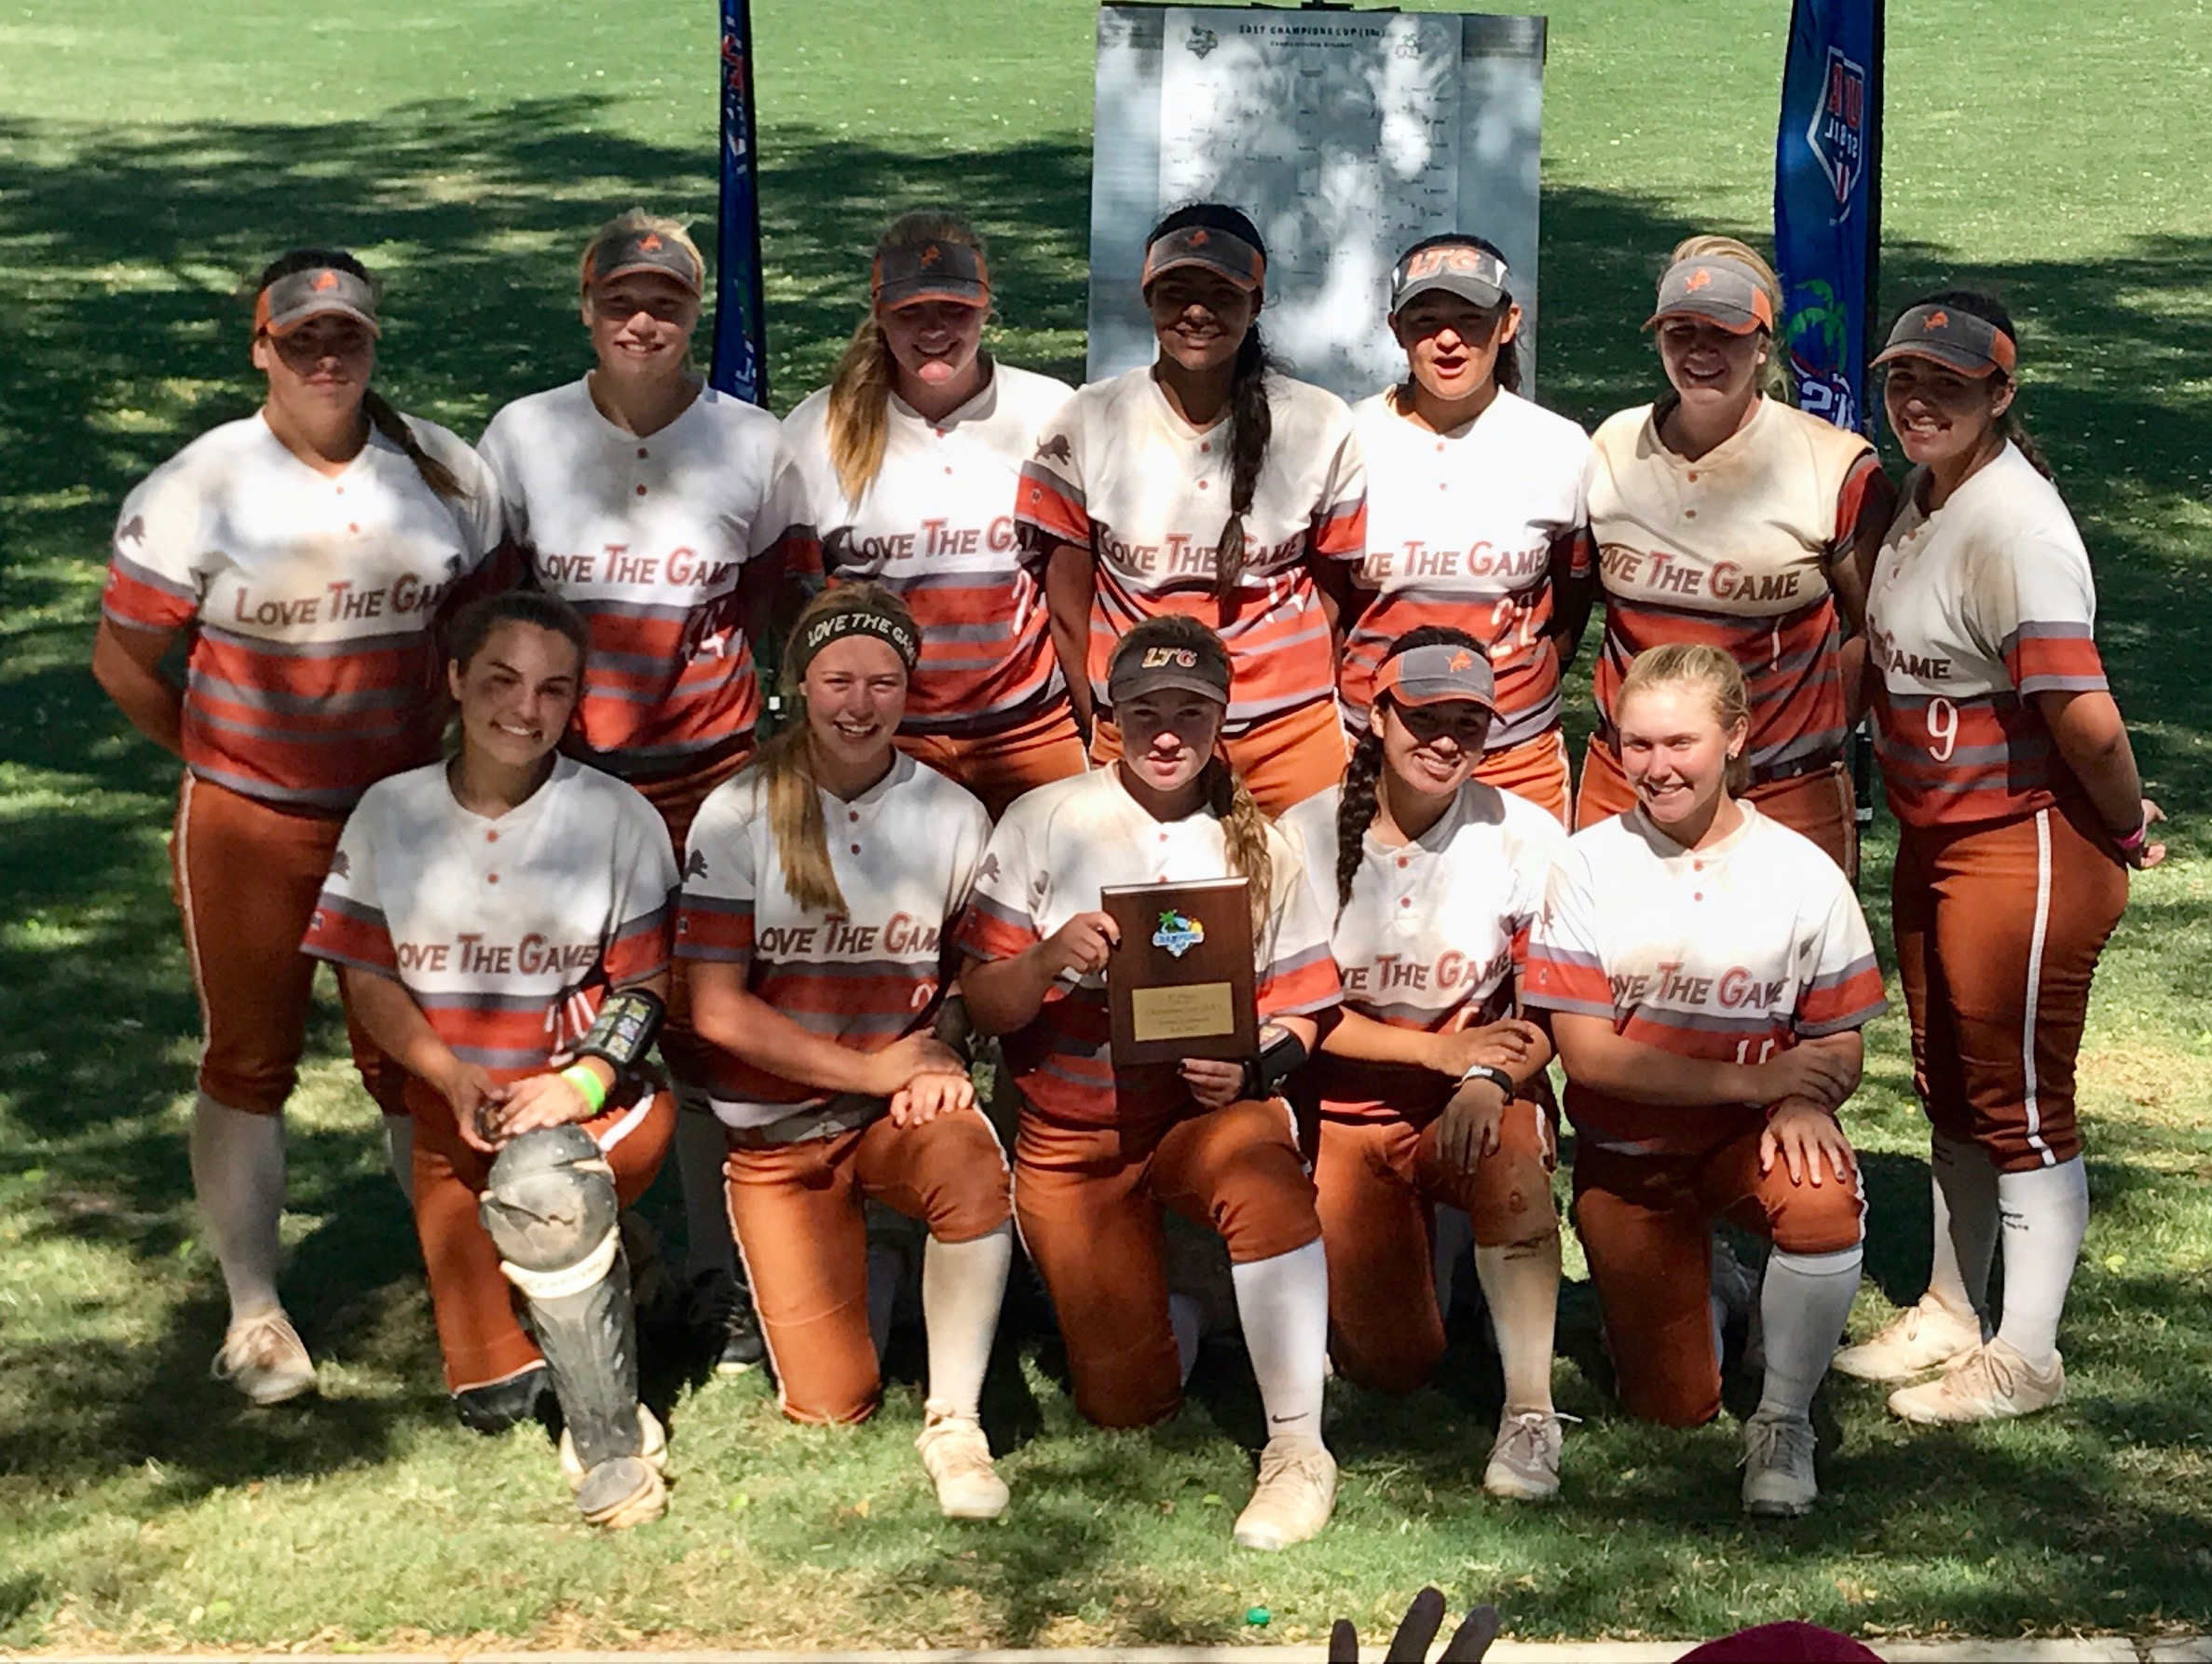 LTG 16U Henderson/Lively Earned 1st Place in the 2017 Champions Cup 16U!